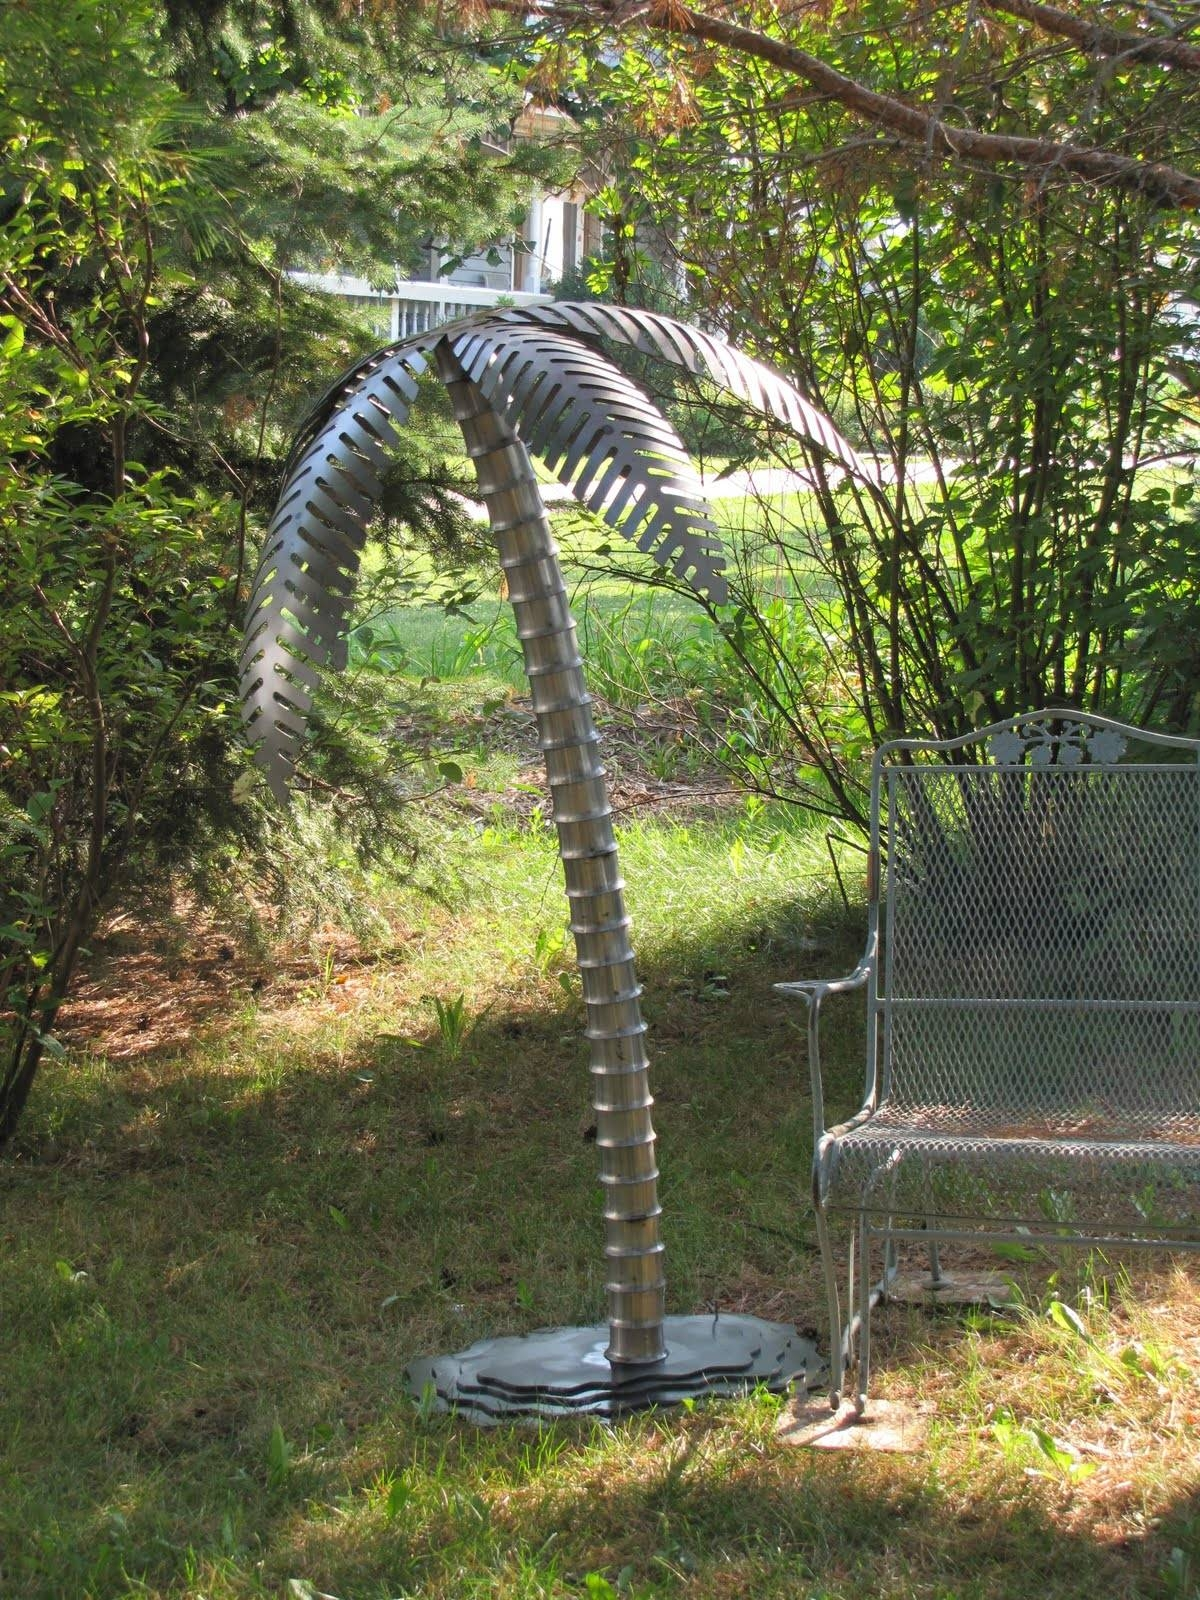 5 Ft Tall Steel Palm Tree | Metal Innovations With Most Up To Date Palm Tree Metal Art (View 3 of 25)